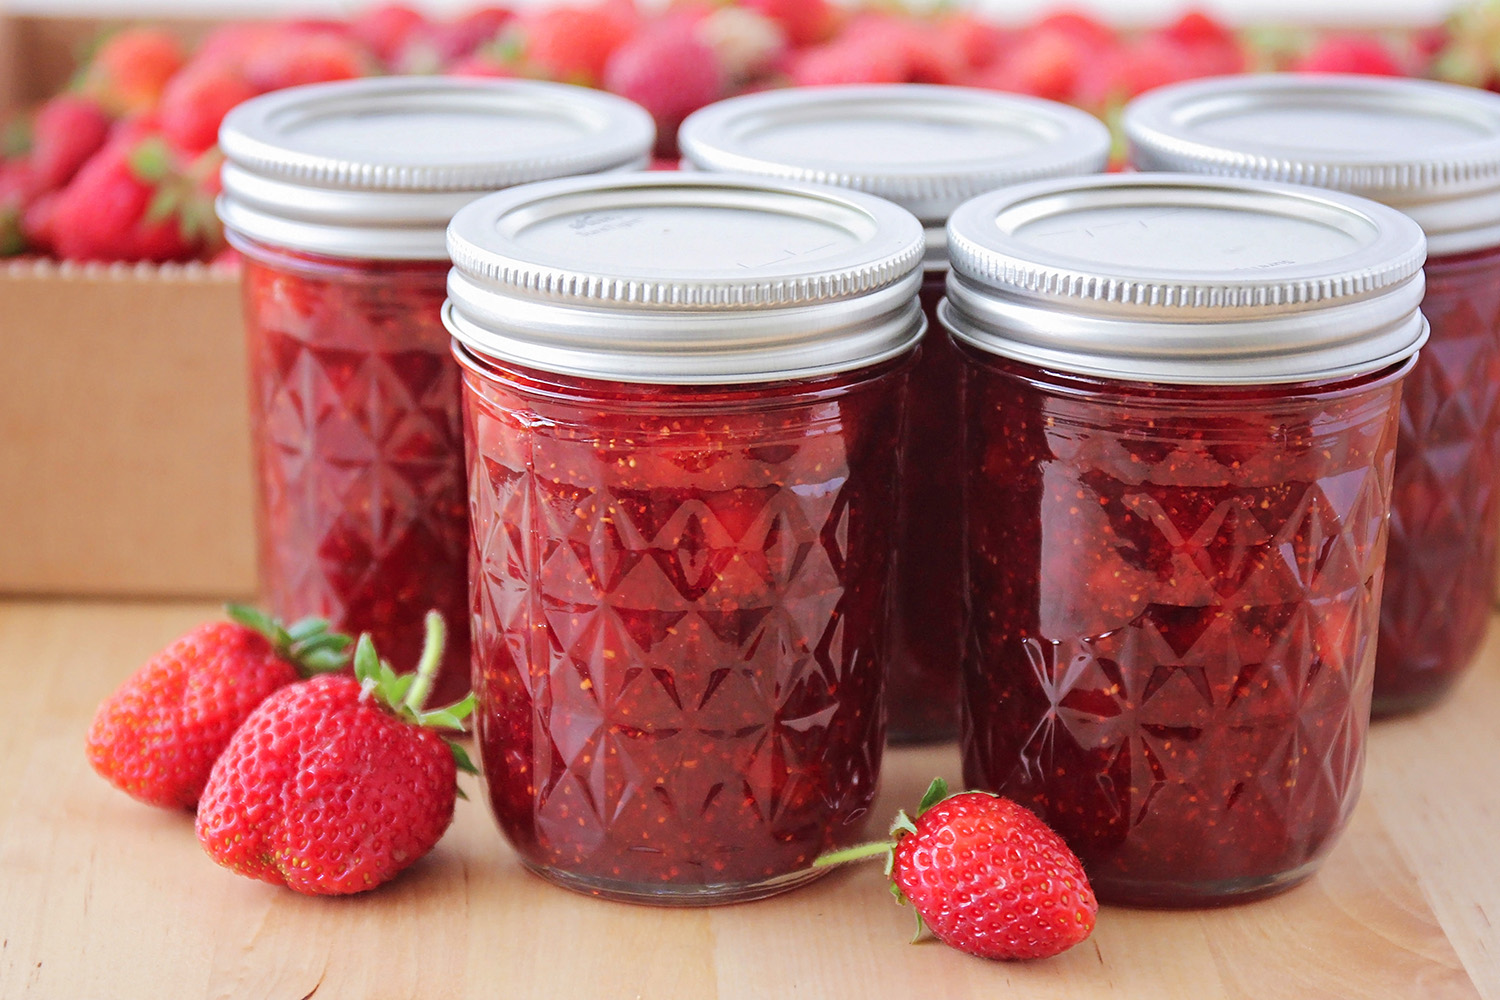 This simple and delicious homemade strawberry jam is so easy to make. It's the perfect way to enjoy those sweet summer berries!